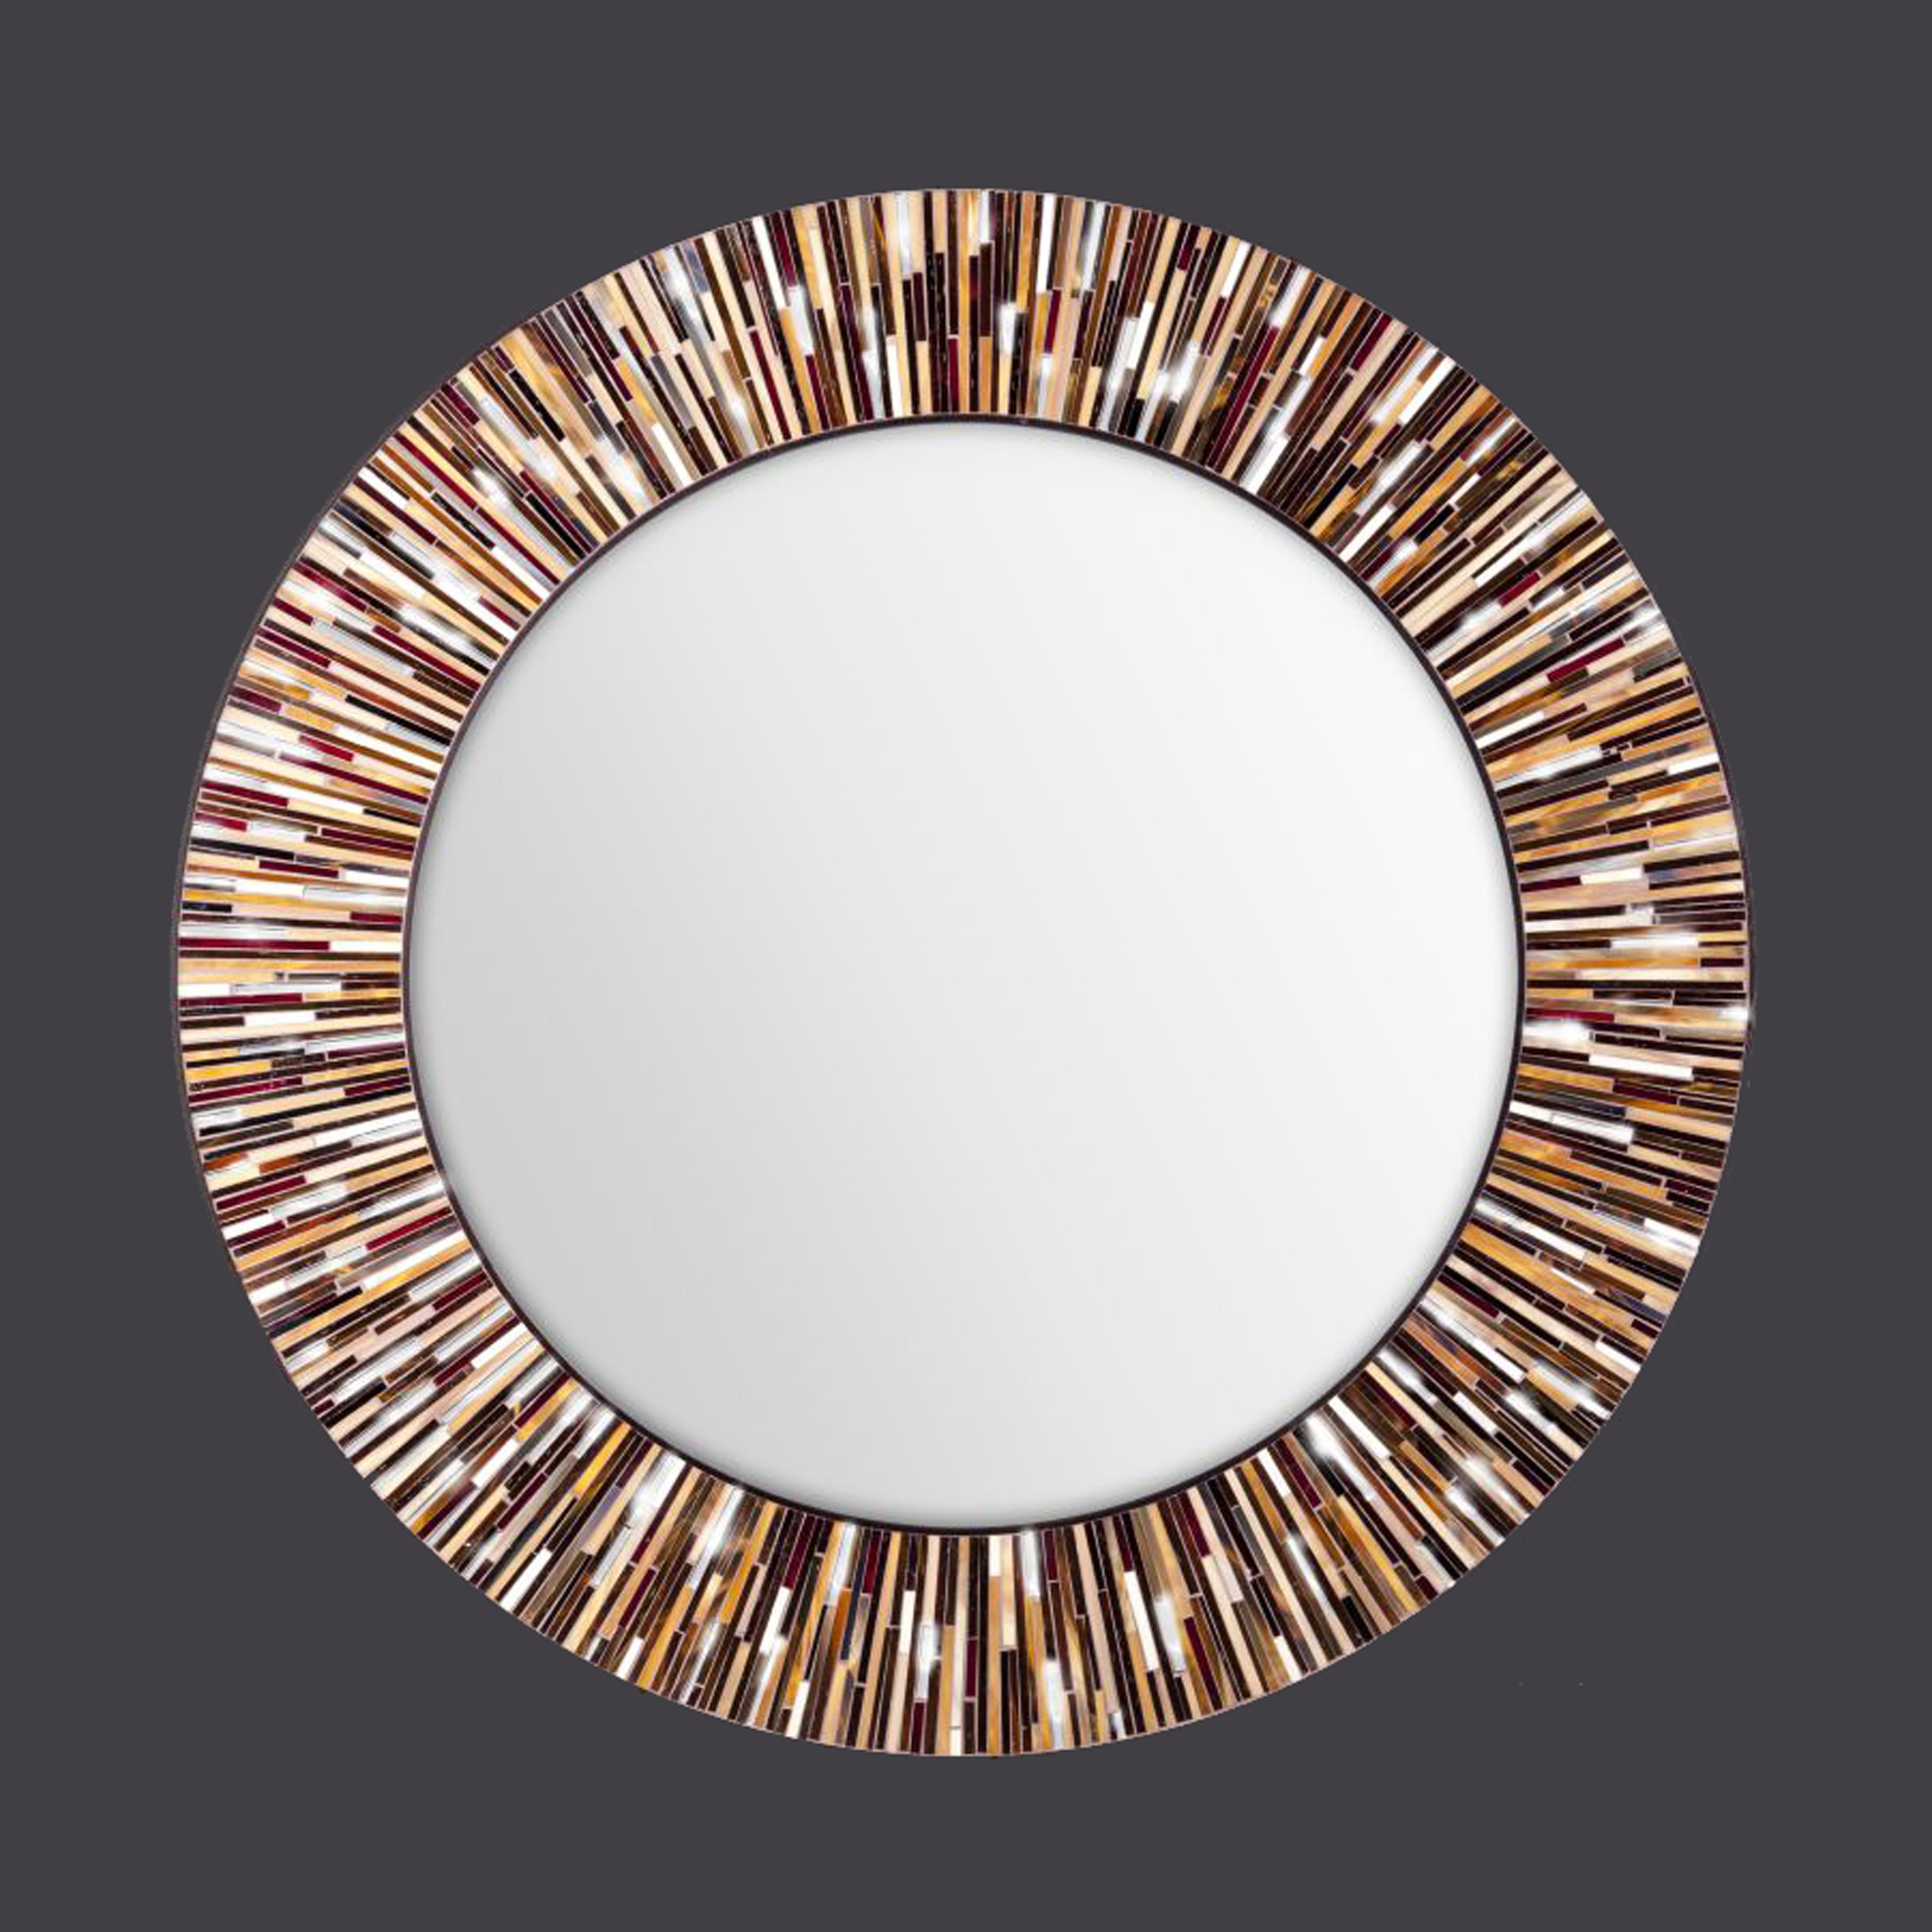 Mosaic Wall Mirrors Piaggi Throughout Unusual Mirrors For Sale (Image 13 of 15)